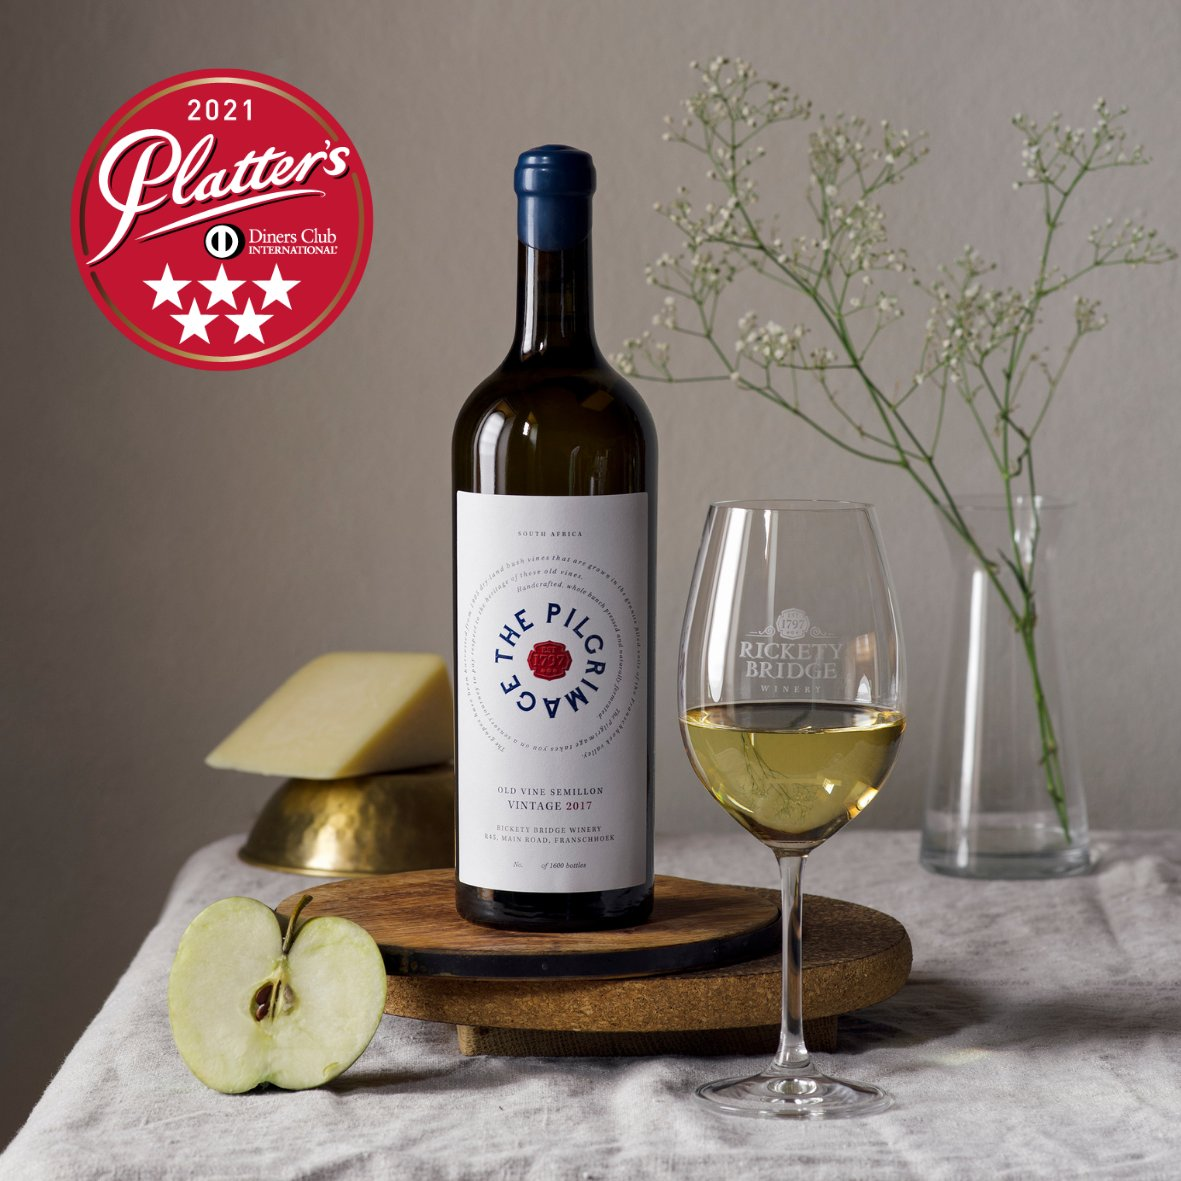 We're delighted to announce that #ThePilgrimage Semillon 2018 has been awarded 5-stars for the second year in a row, by #Platters2021.   Congratulations to our wine-making team on these outstanding results!   Purchase our current vintage online >   🥂